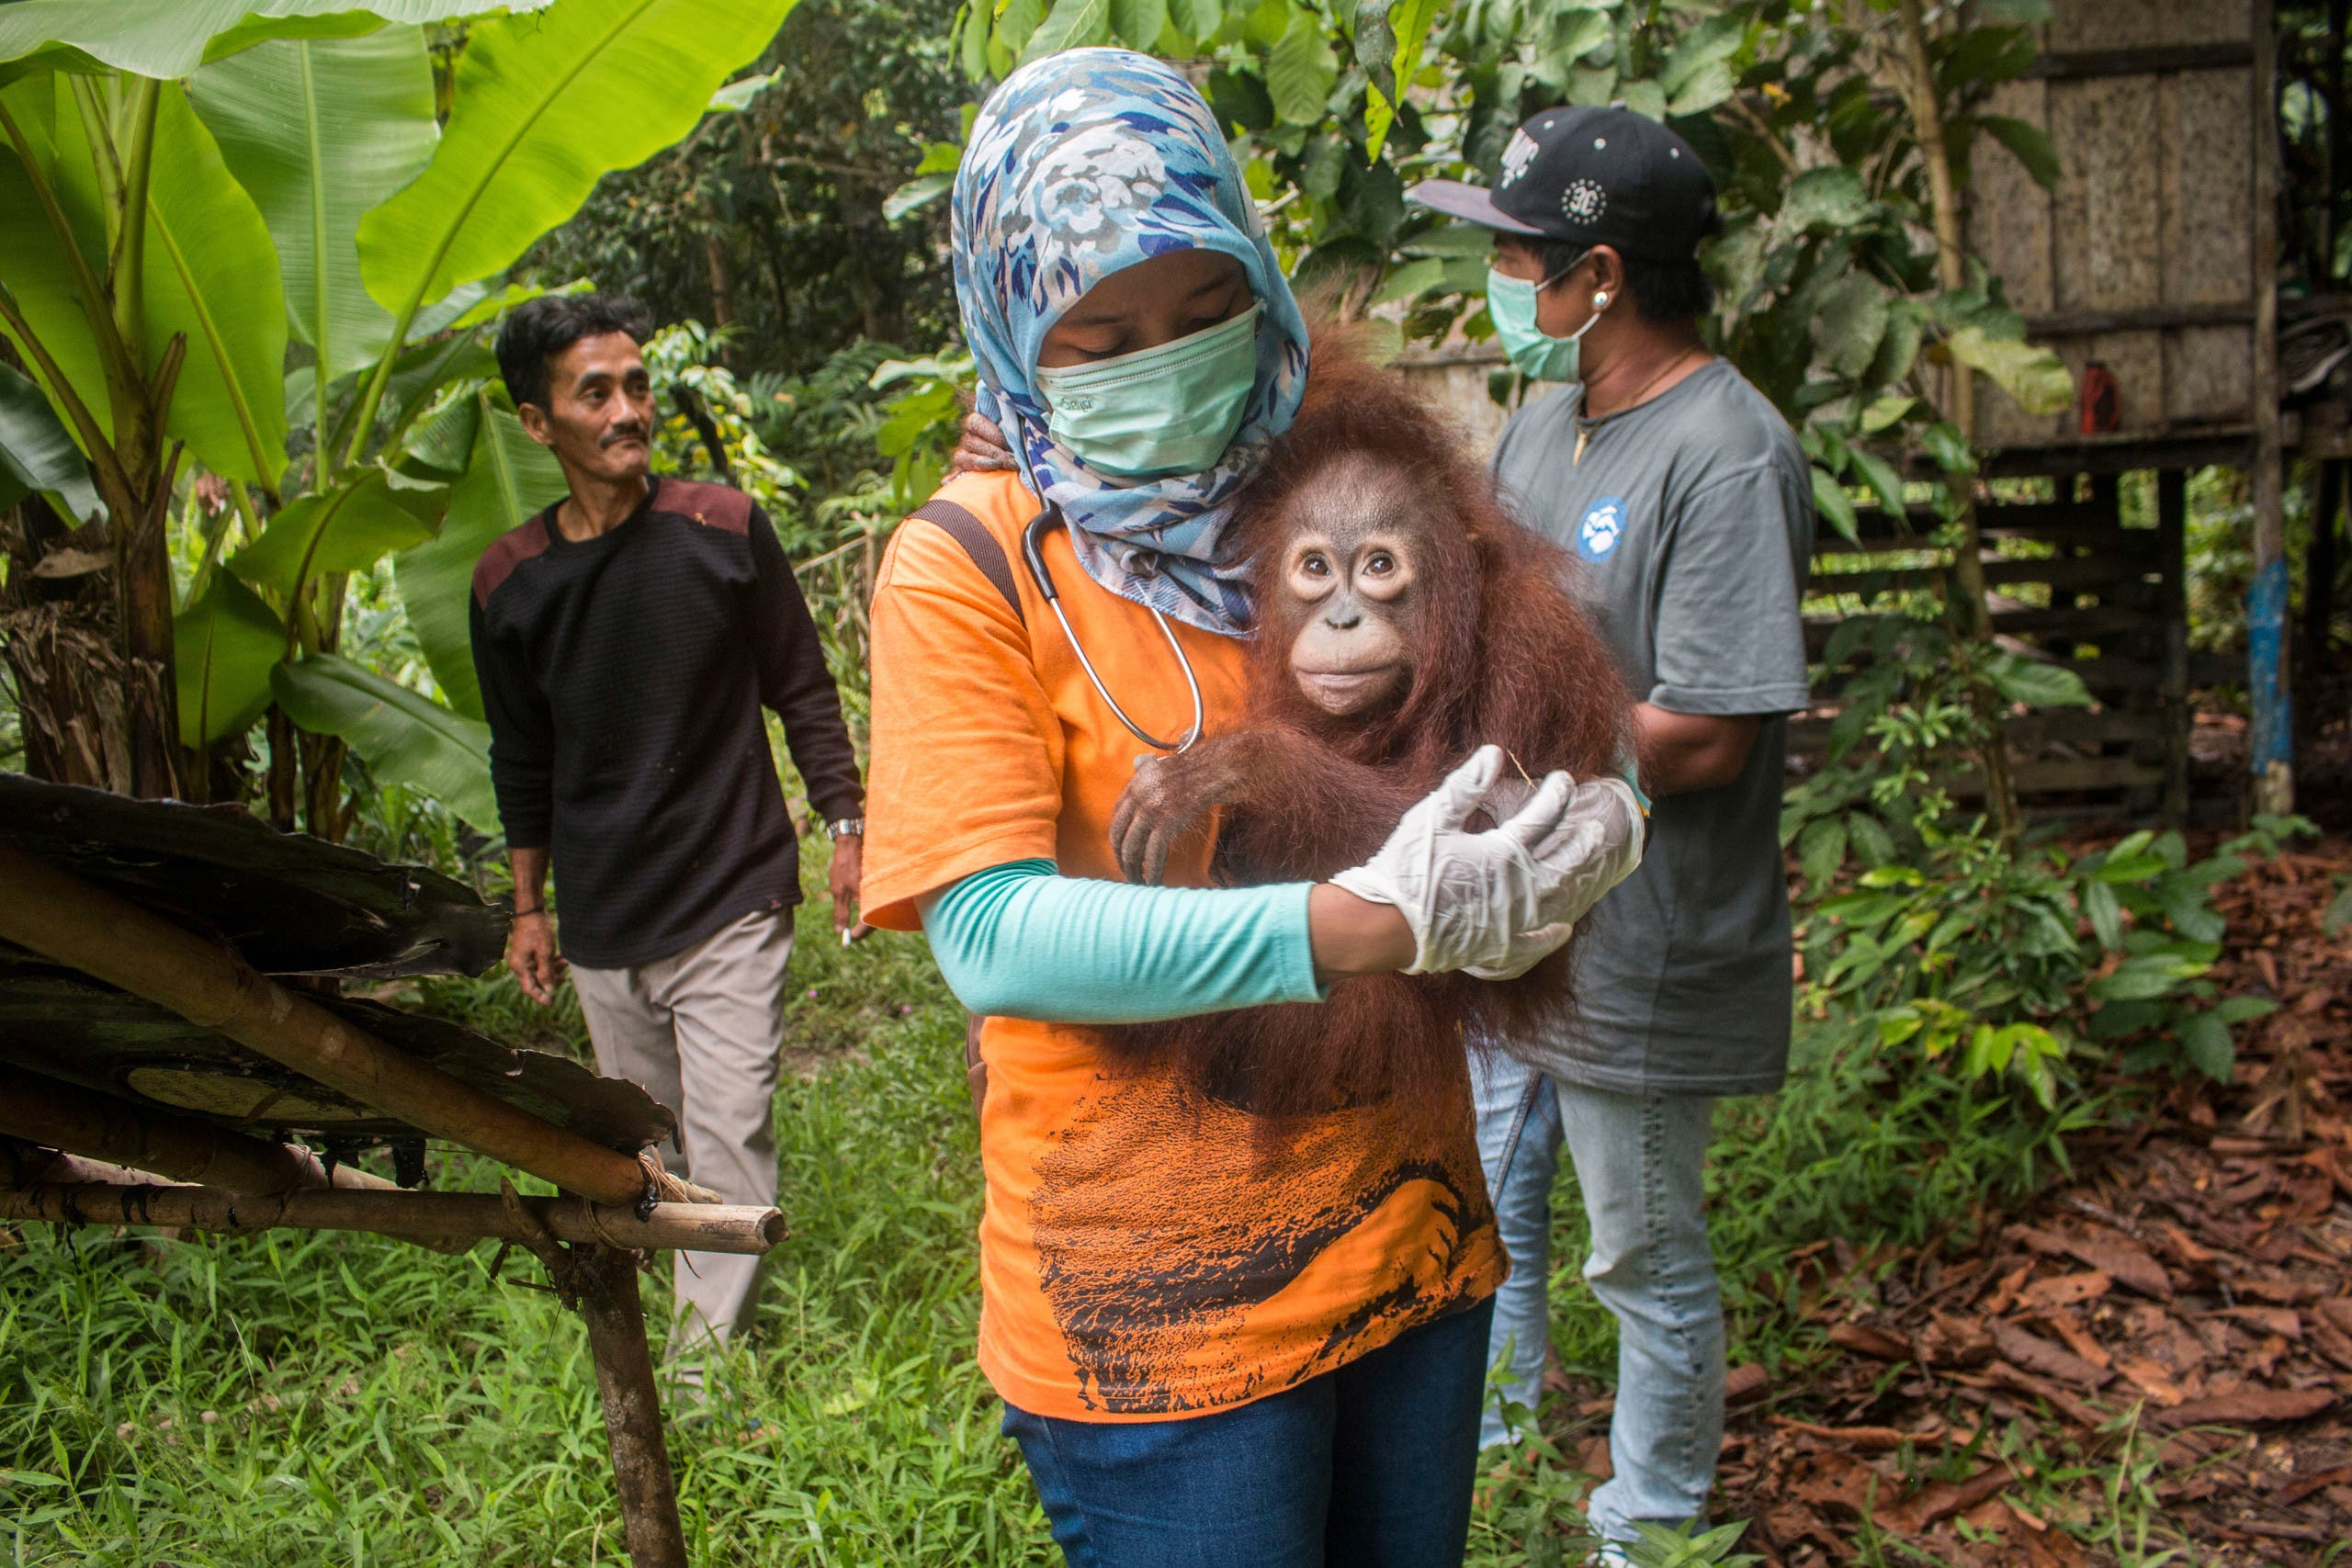 This handout from the International Animal Rescue taken on March 19, 2018 and released on March 23, 2018 shows Utu the orangutan being carried after being rescued from villagers (AFP)